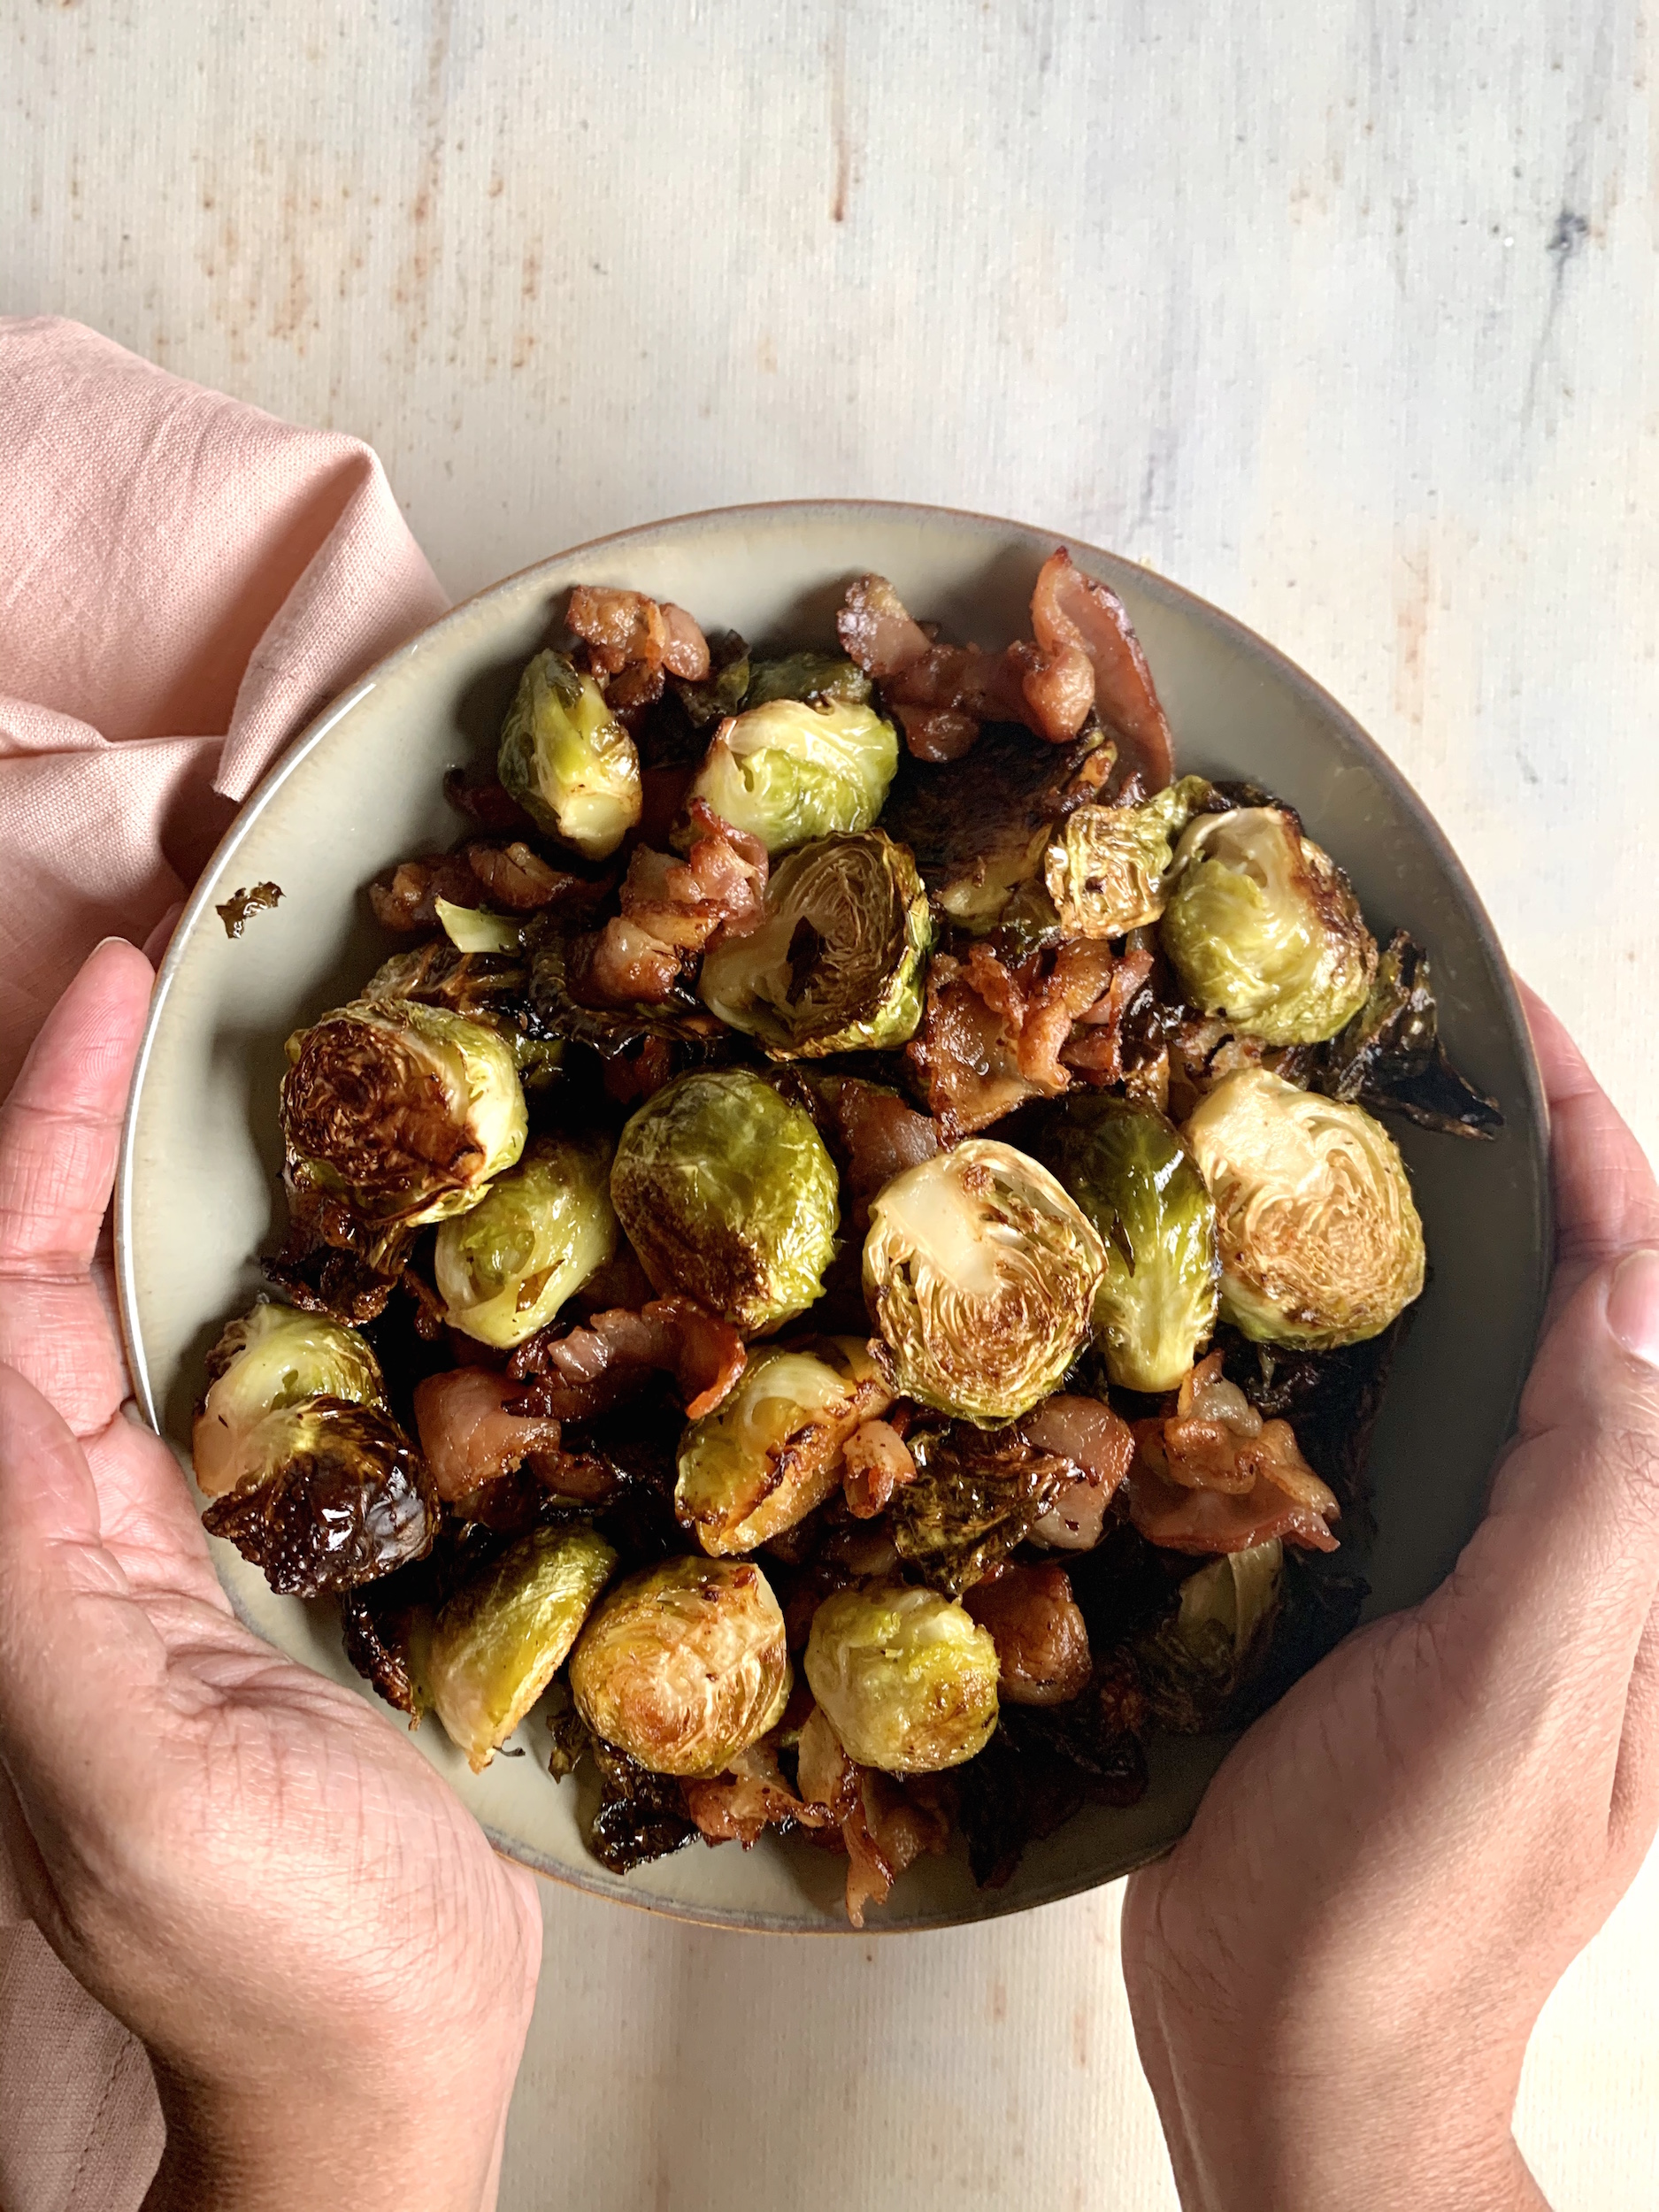 bowl of roasted brussels sprouts with bacon with hands setting on the table